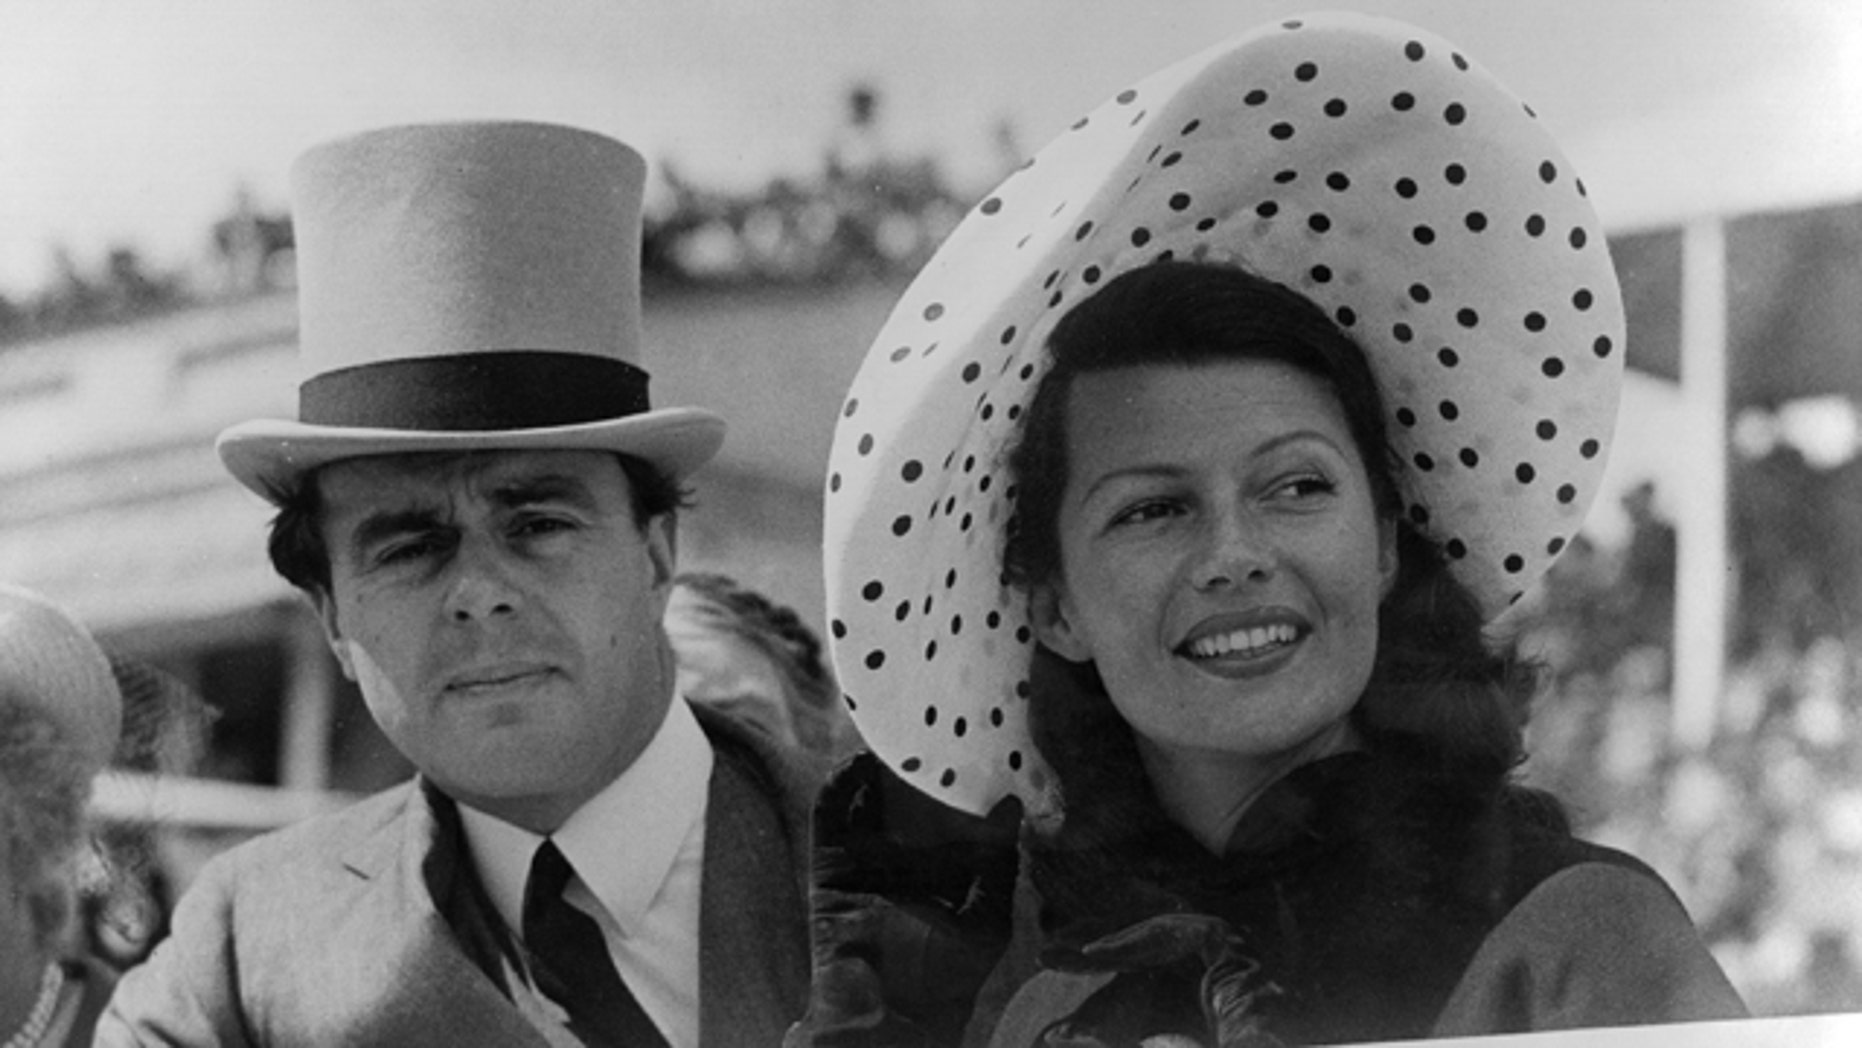 Prince Aly Khan (1911 - 1960) at Epsom races with his wife, Hollywood actress Rita Hayworth (1918 -1987).